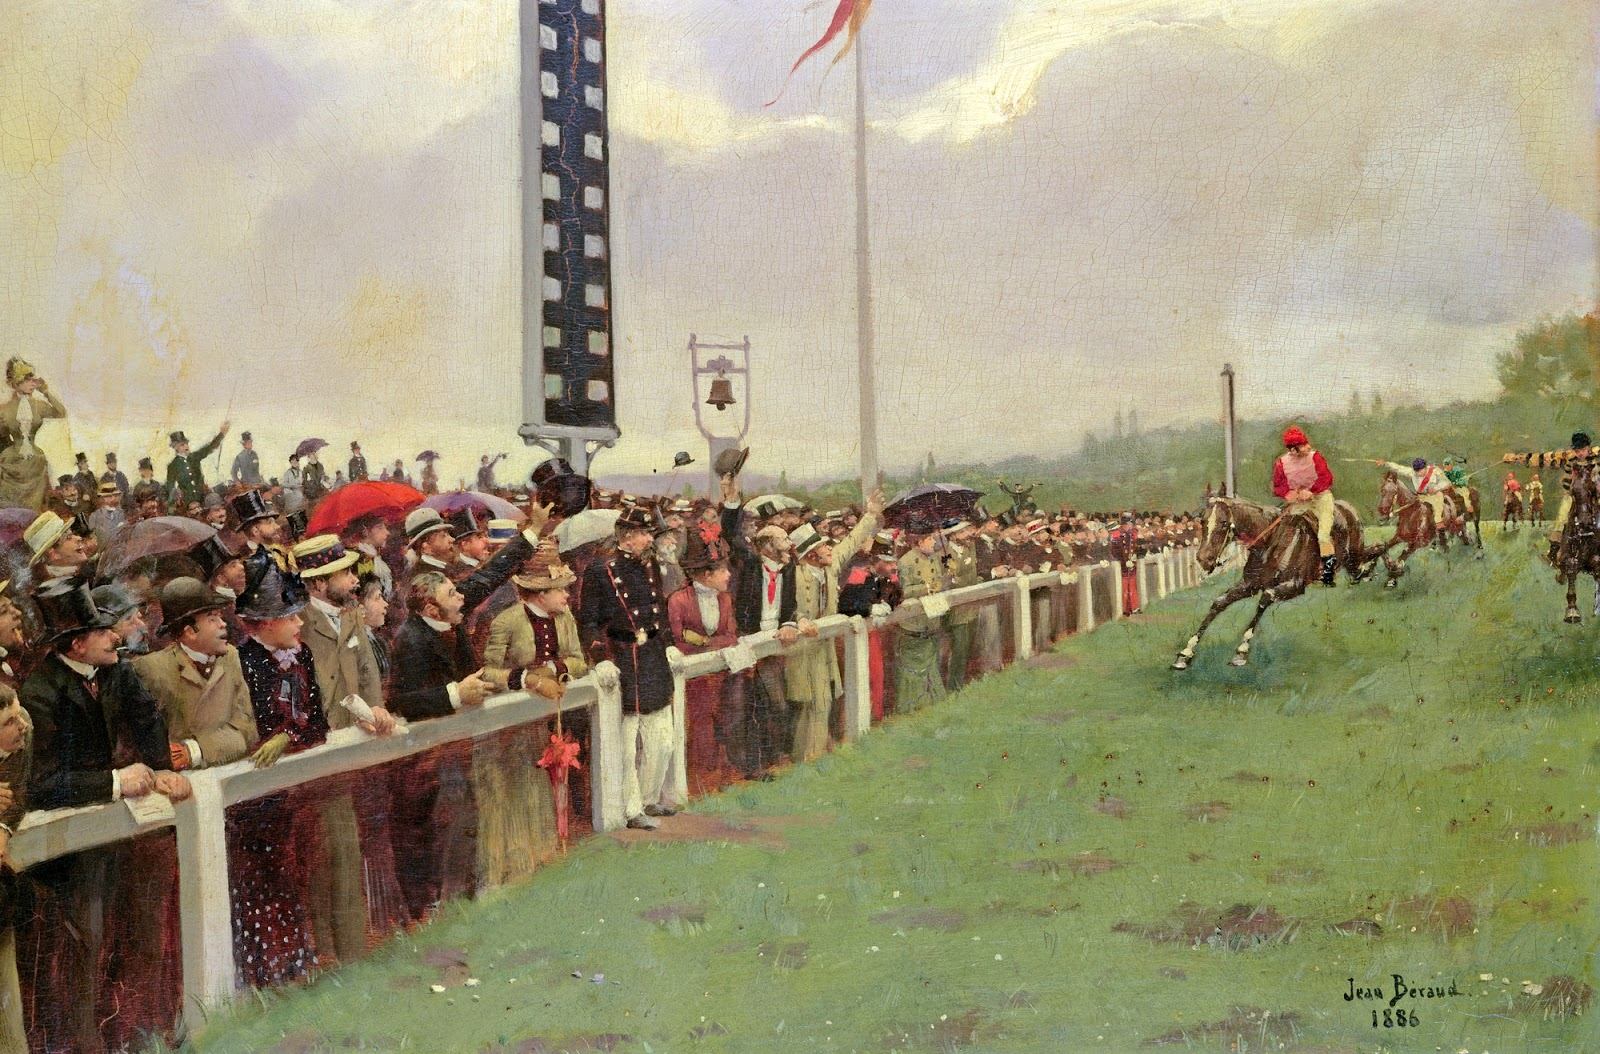 Jean    C Araud    Entrance  The  races  at  Longchamps C